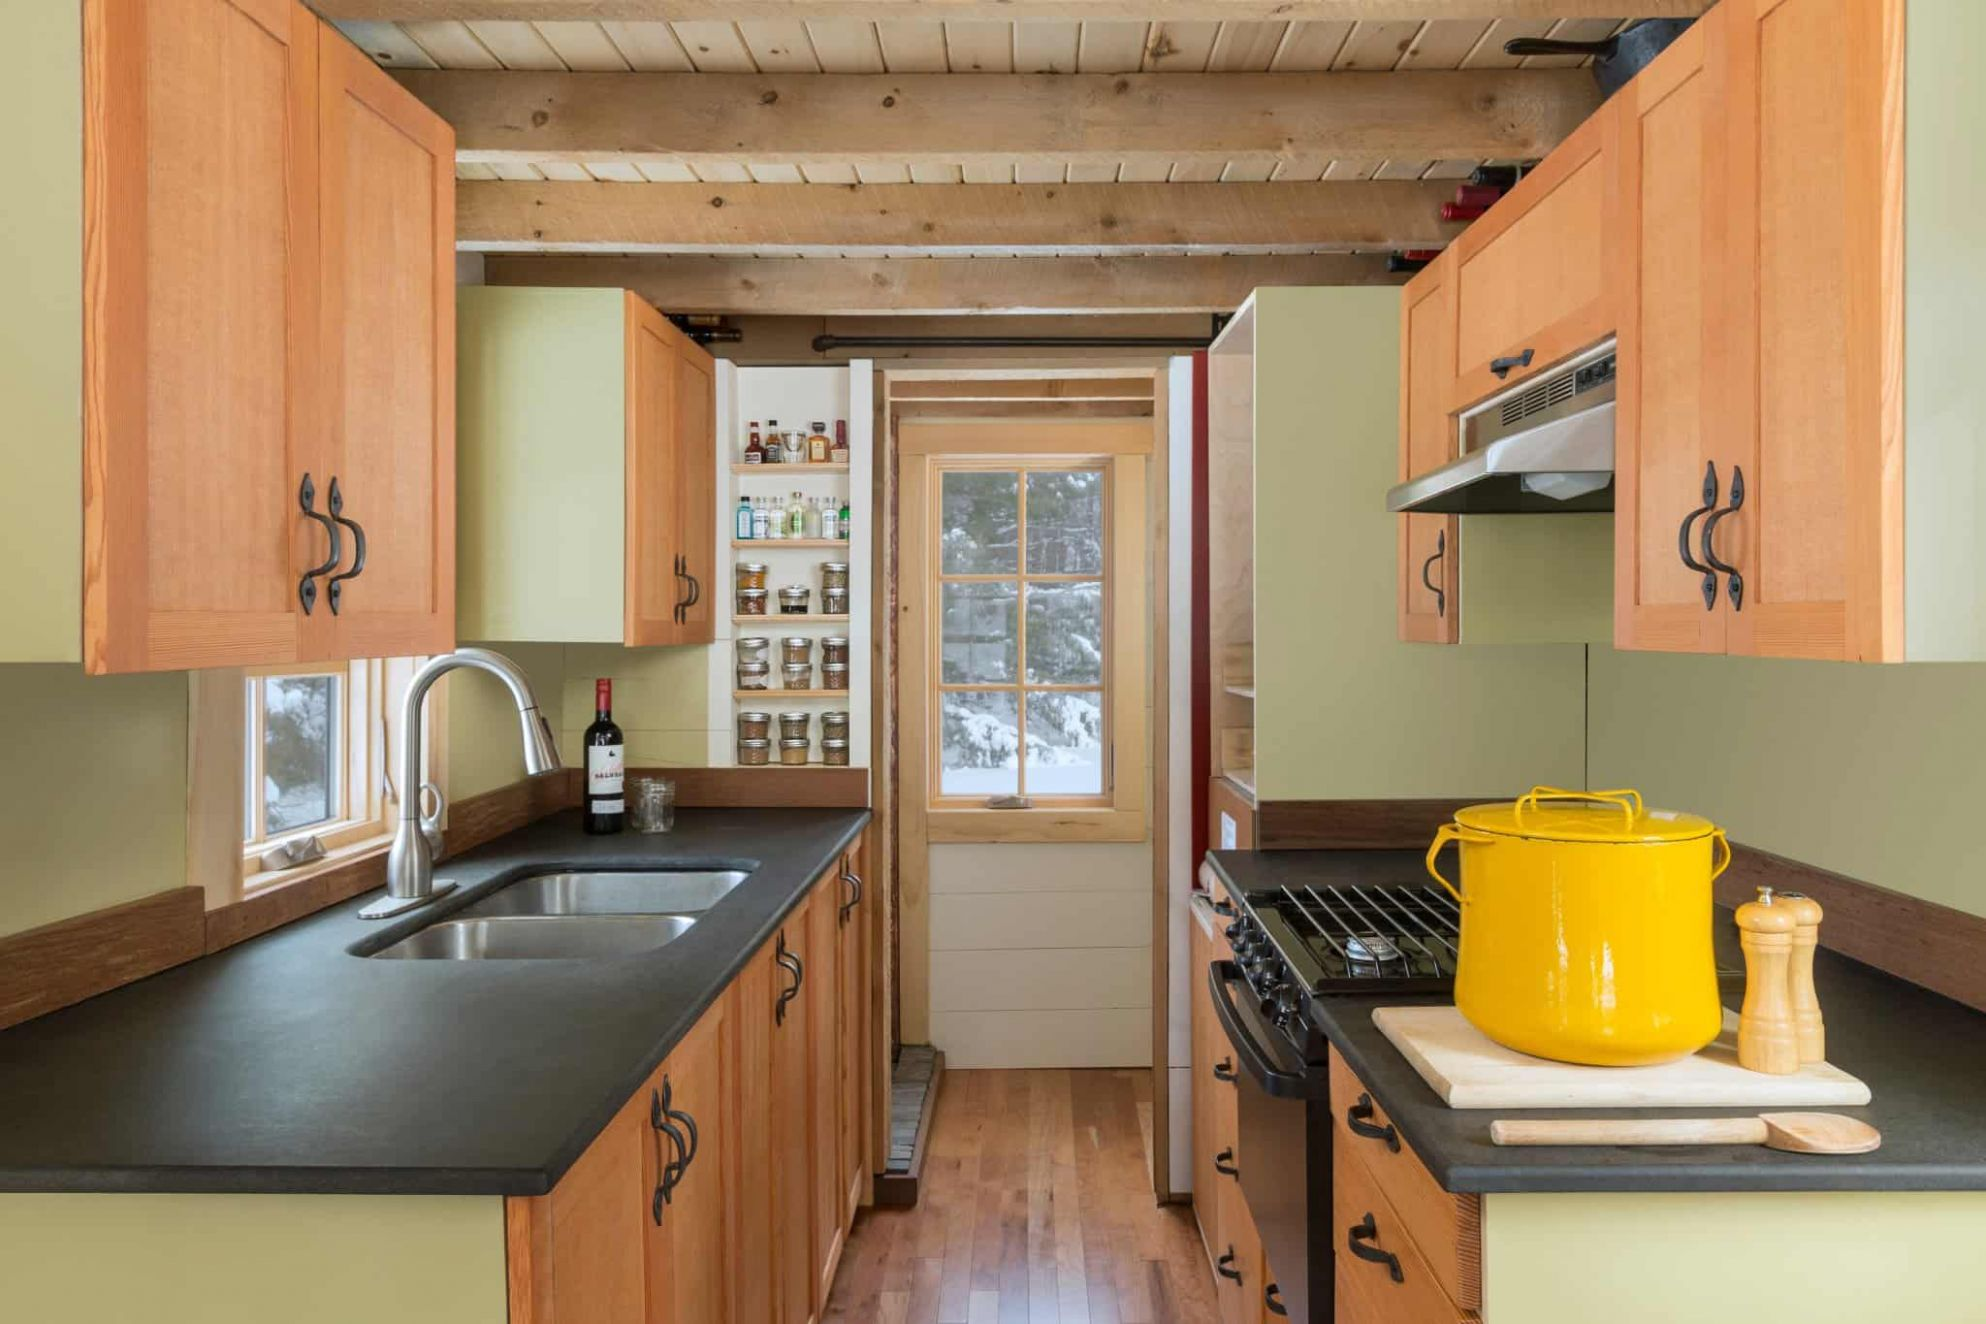 Tiny House Plumbing: Build your Bathroom, including Shower & Toilet - tiny house plumbing